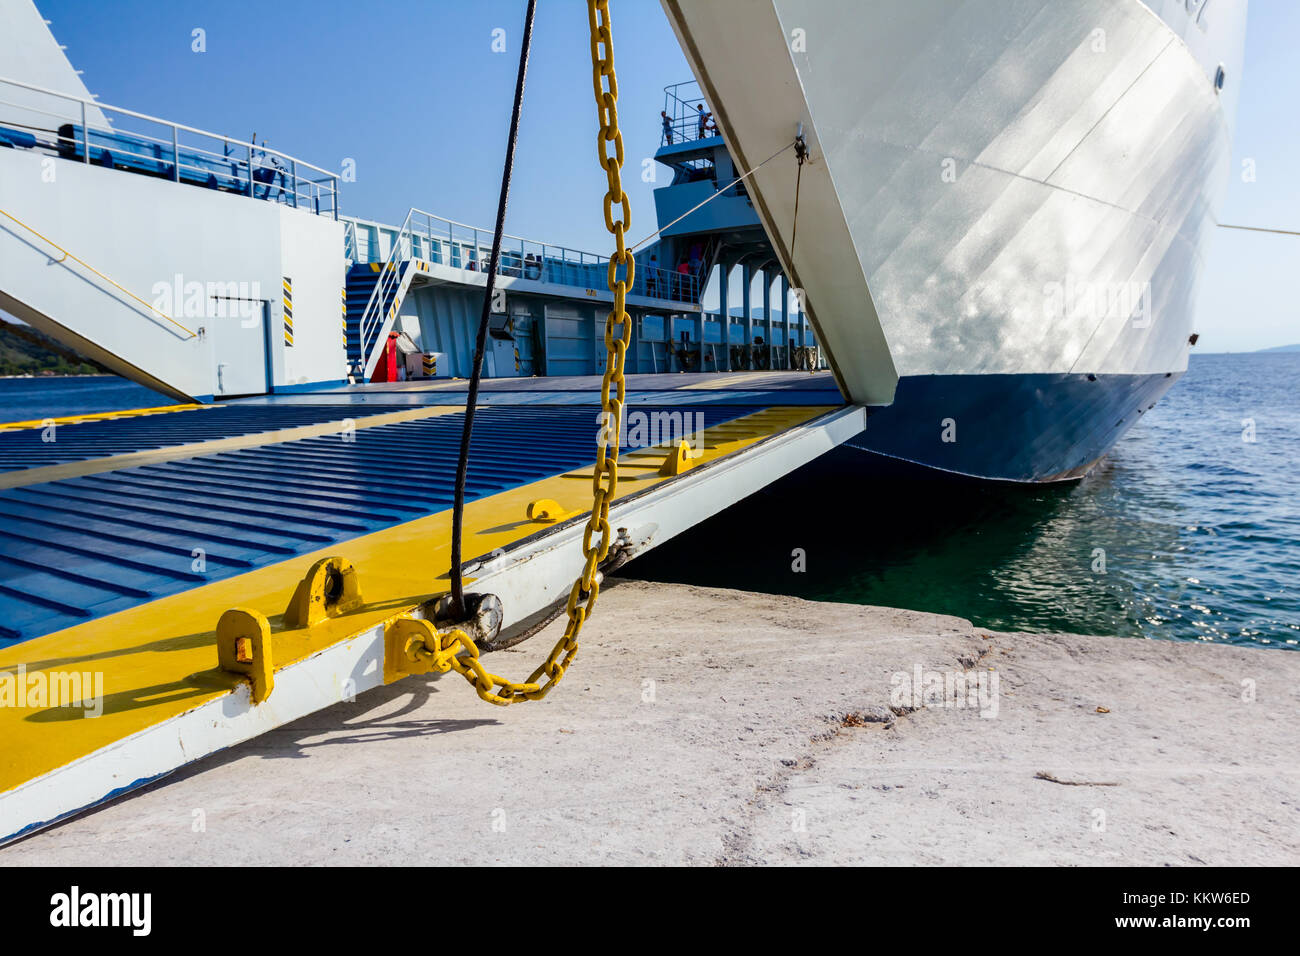 Anchored large ferryboat has open front entrance at the local port. - Stock Image